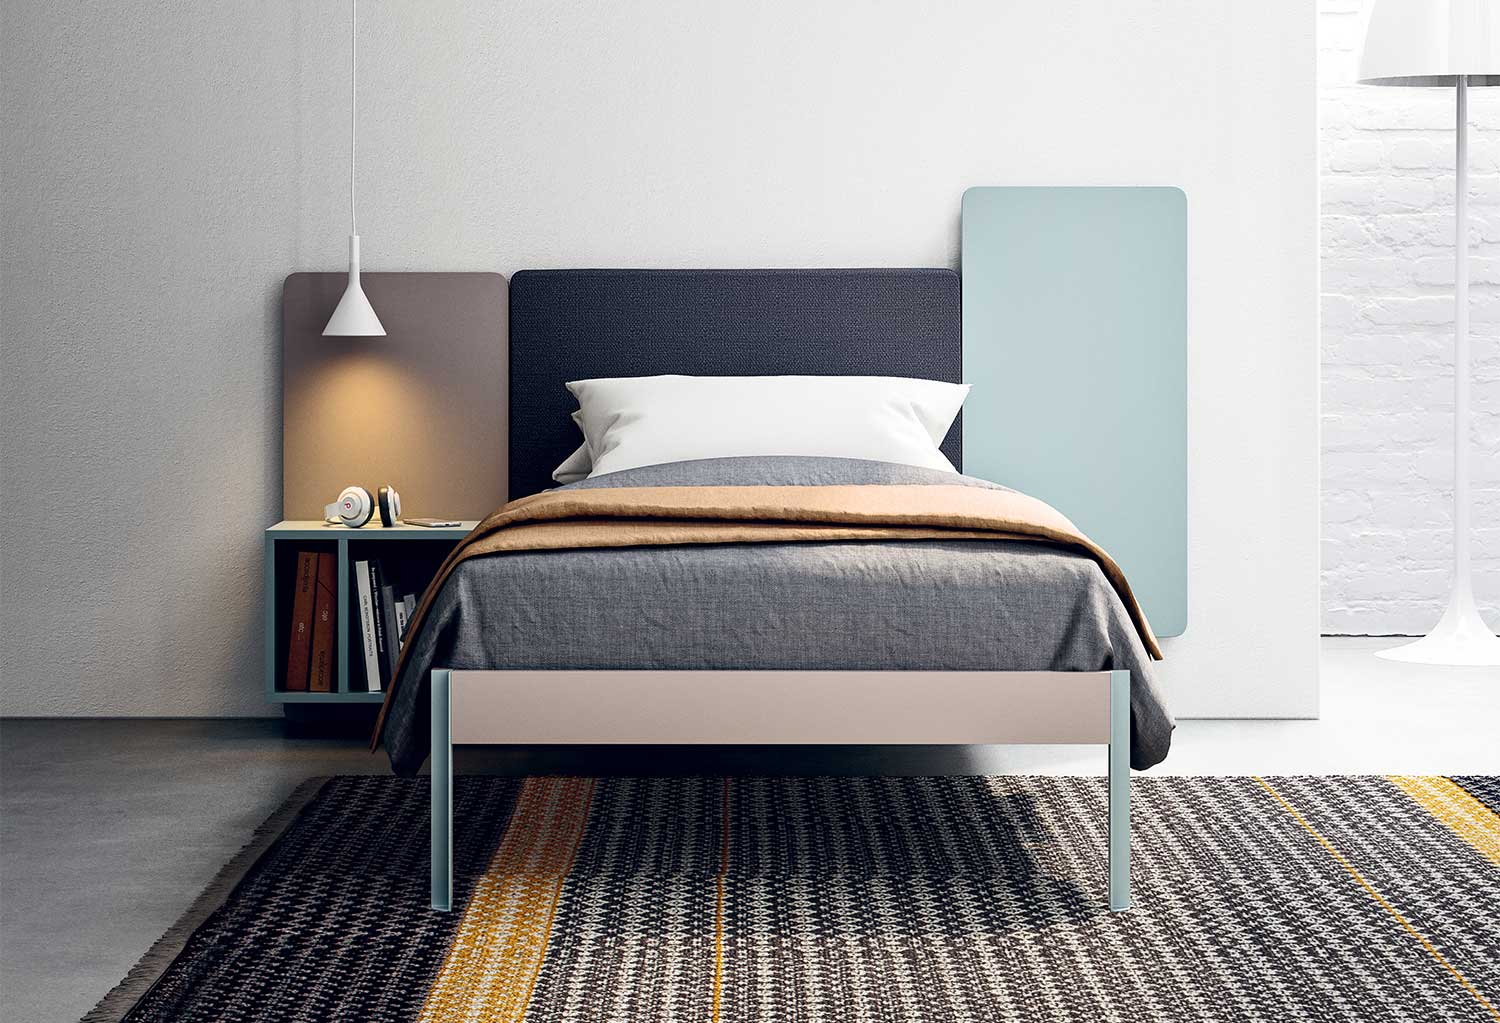 Wall modular headboard with bedside table and single bed Turca